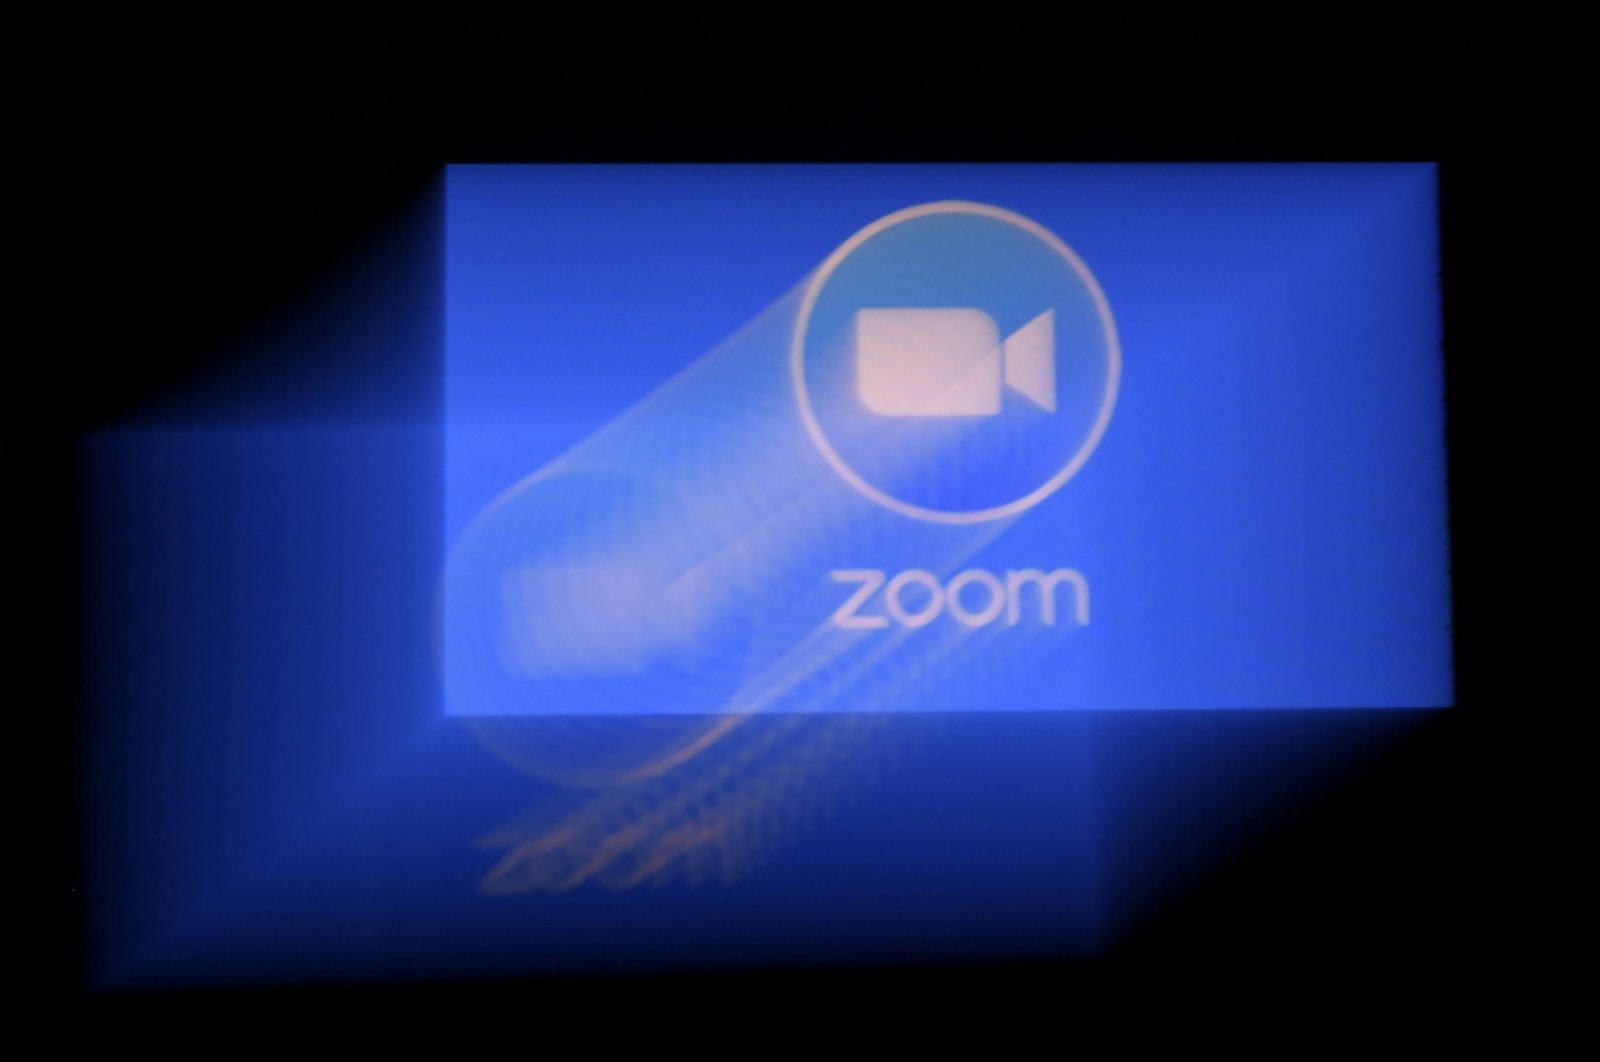 Zoom app logo is displayed on a smartphone on March 30, 2020, in Arlington, Virginia. (AFP Photo)